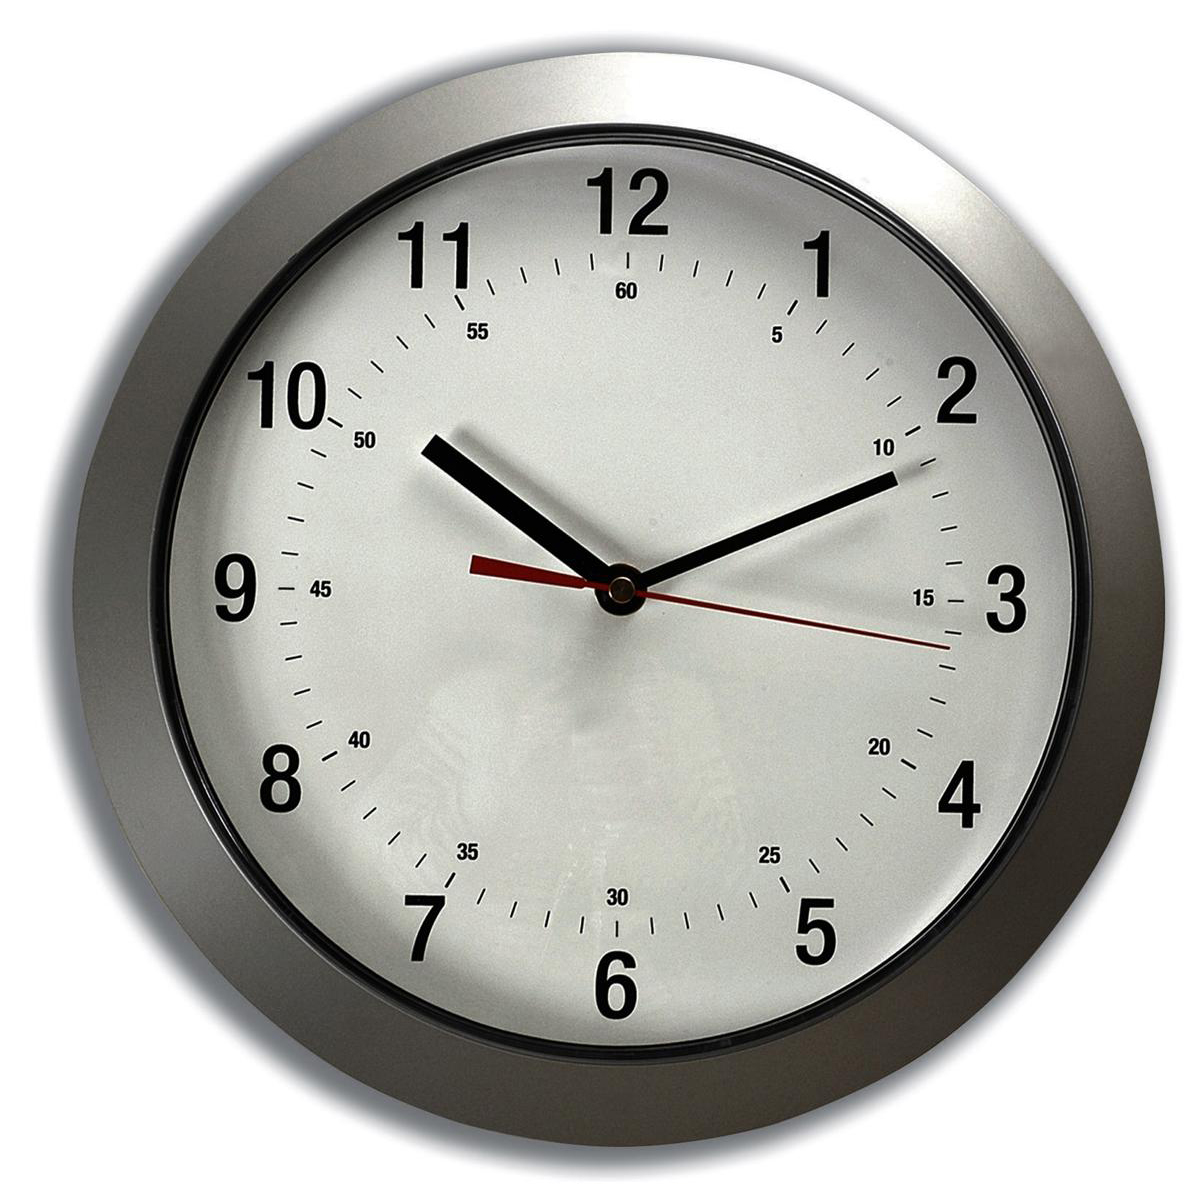 5 Star Facilities Wall Clock With Coloured Case Diameter 300mm